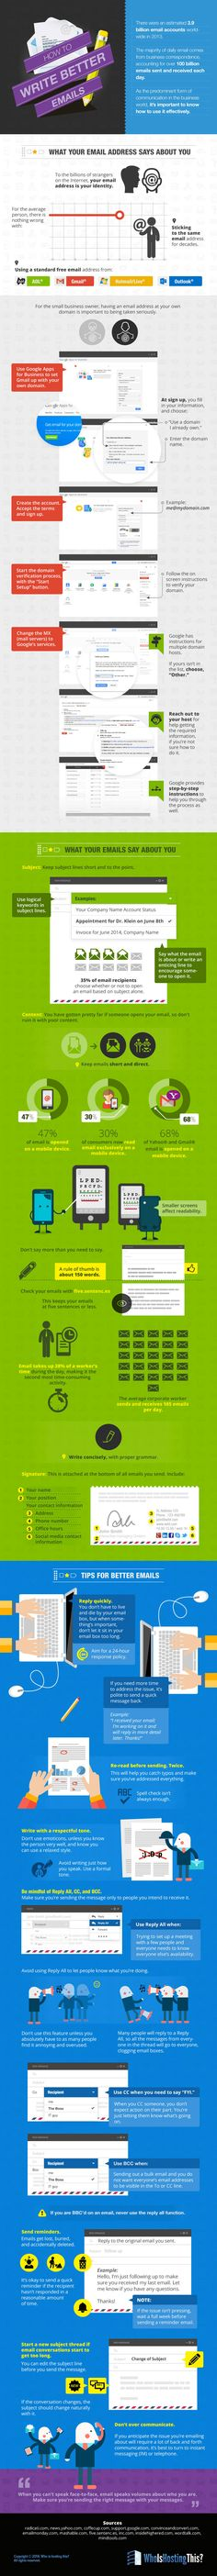 How to Write Better Emails #Infographic #email